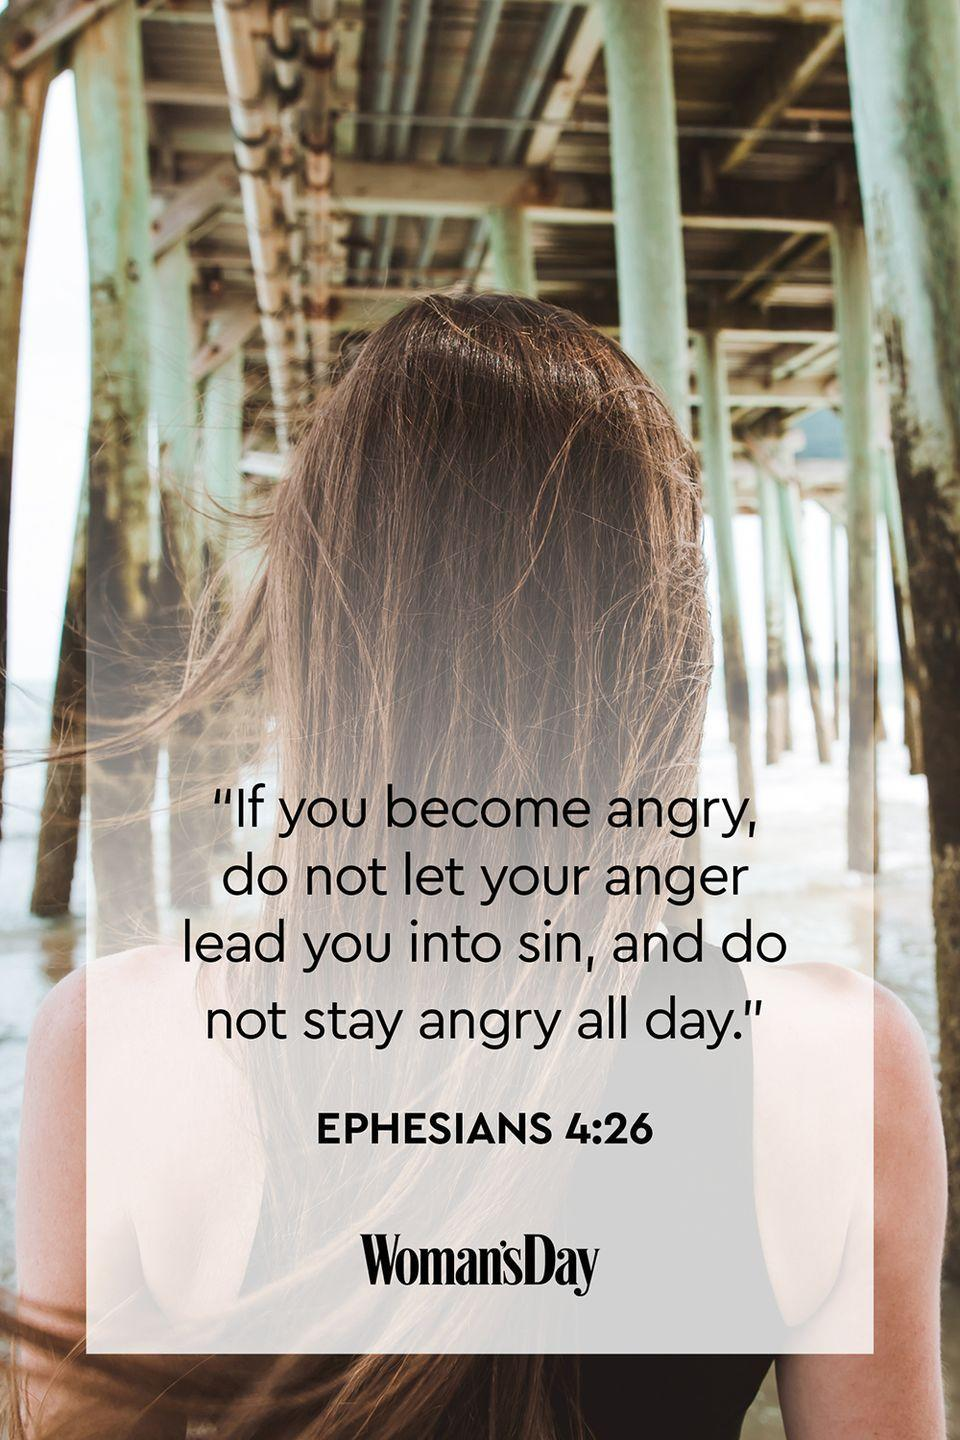 """<p>""""If you become angry, do not let your anger lead you into sin, and do not stay angry all day.""""</p><p><strong>The Good News</strong>: When we're angry, we can do something we might regret later or act in a way that could hurt those around us. Wait until the anger dissipates before making a decision or taking action.</p>"""